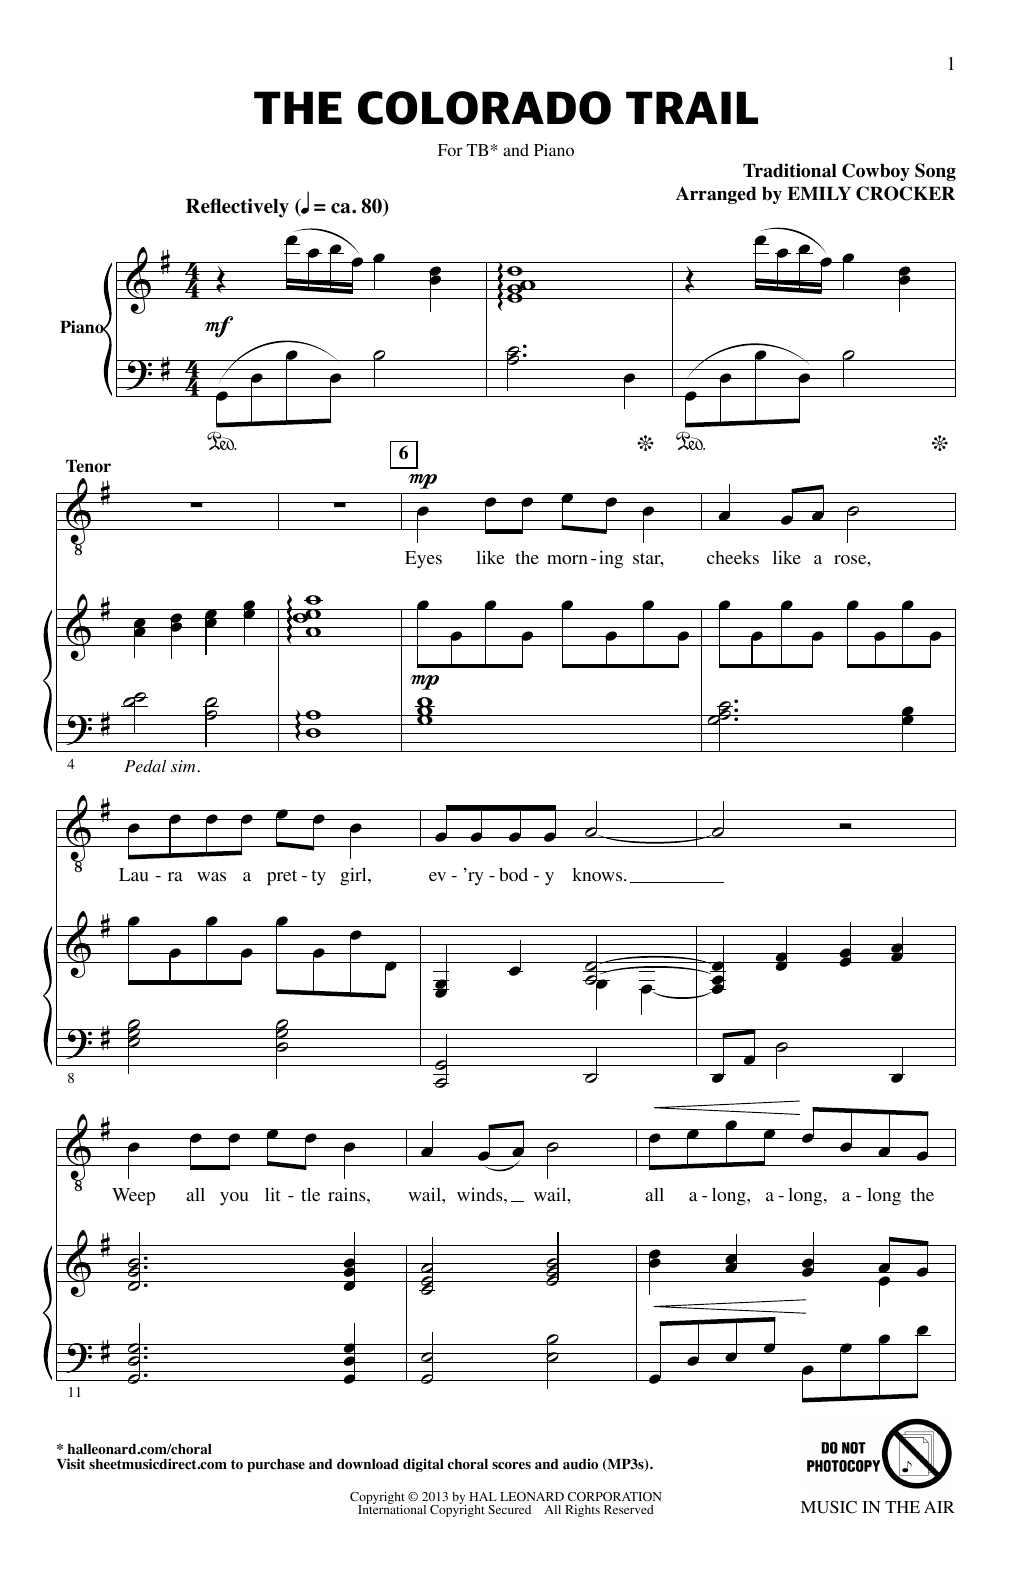 Emily Crocker The Colorado Trail (from Music In The Air) sheet music notes printable PDF score